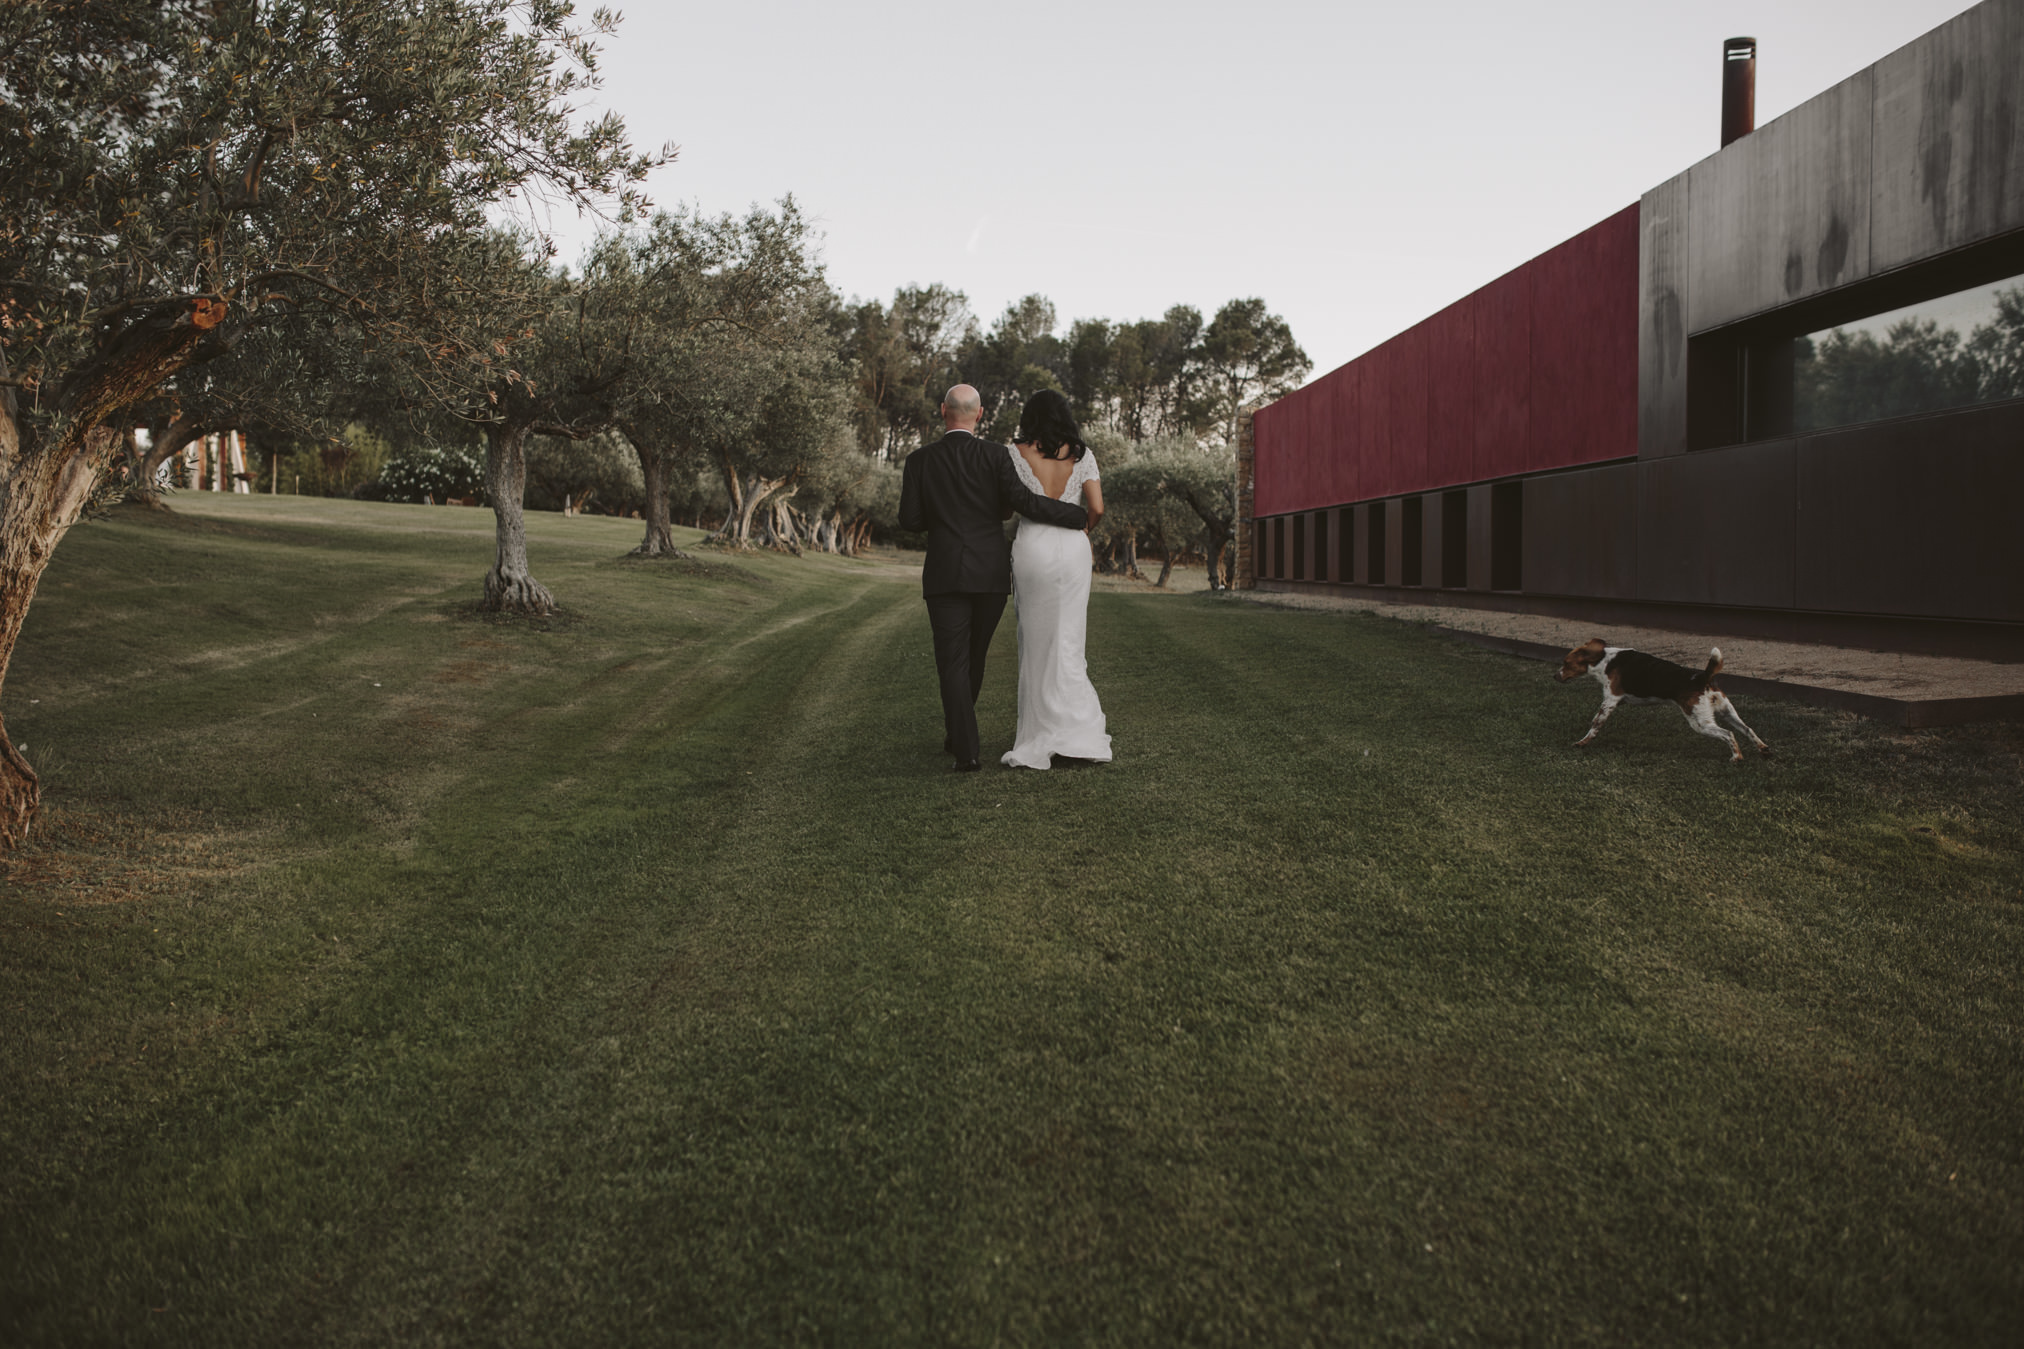 destination wedding photographer Girona Graciela Vilagudin Photography -111.jpg